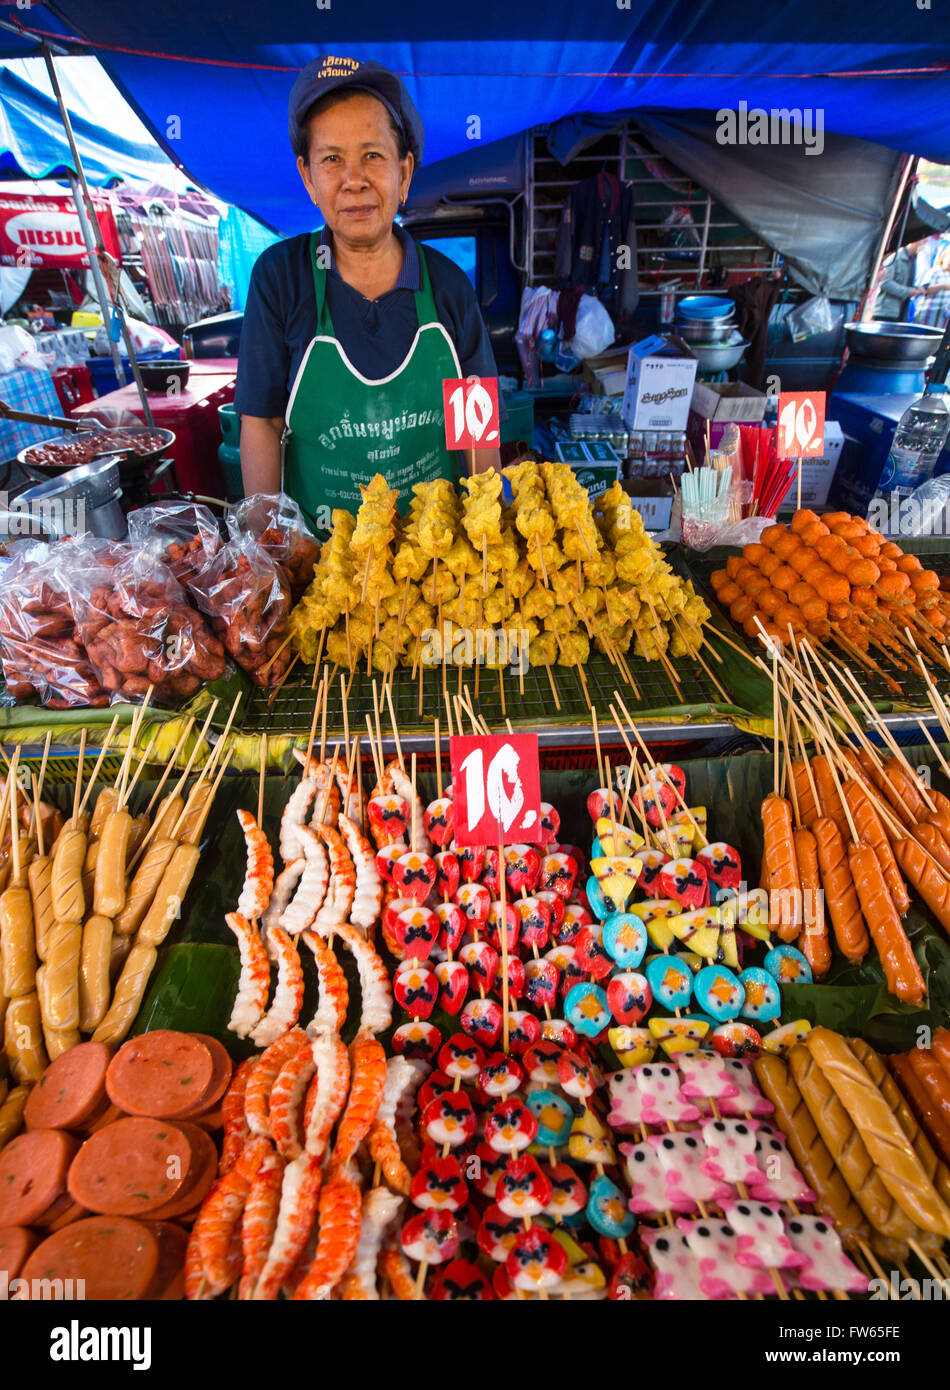 Market stall with various skewers with meat, fish and sausage, food stall, food for sale at a night market, Thailand - Stock Image